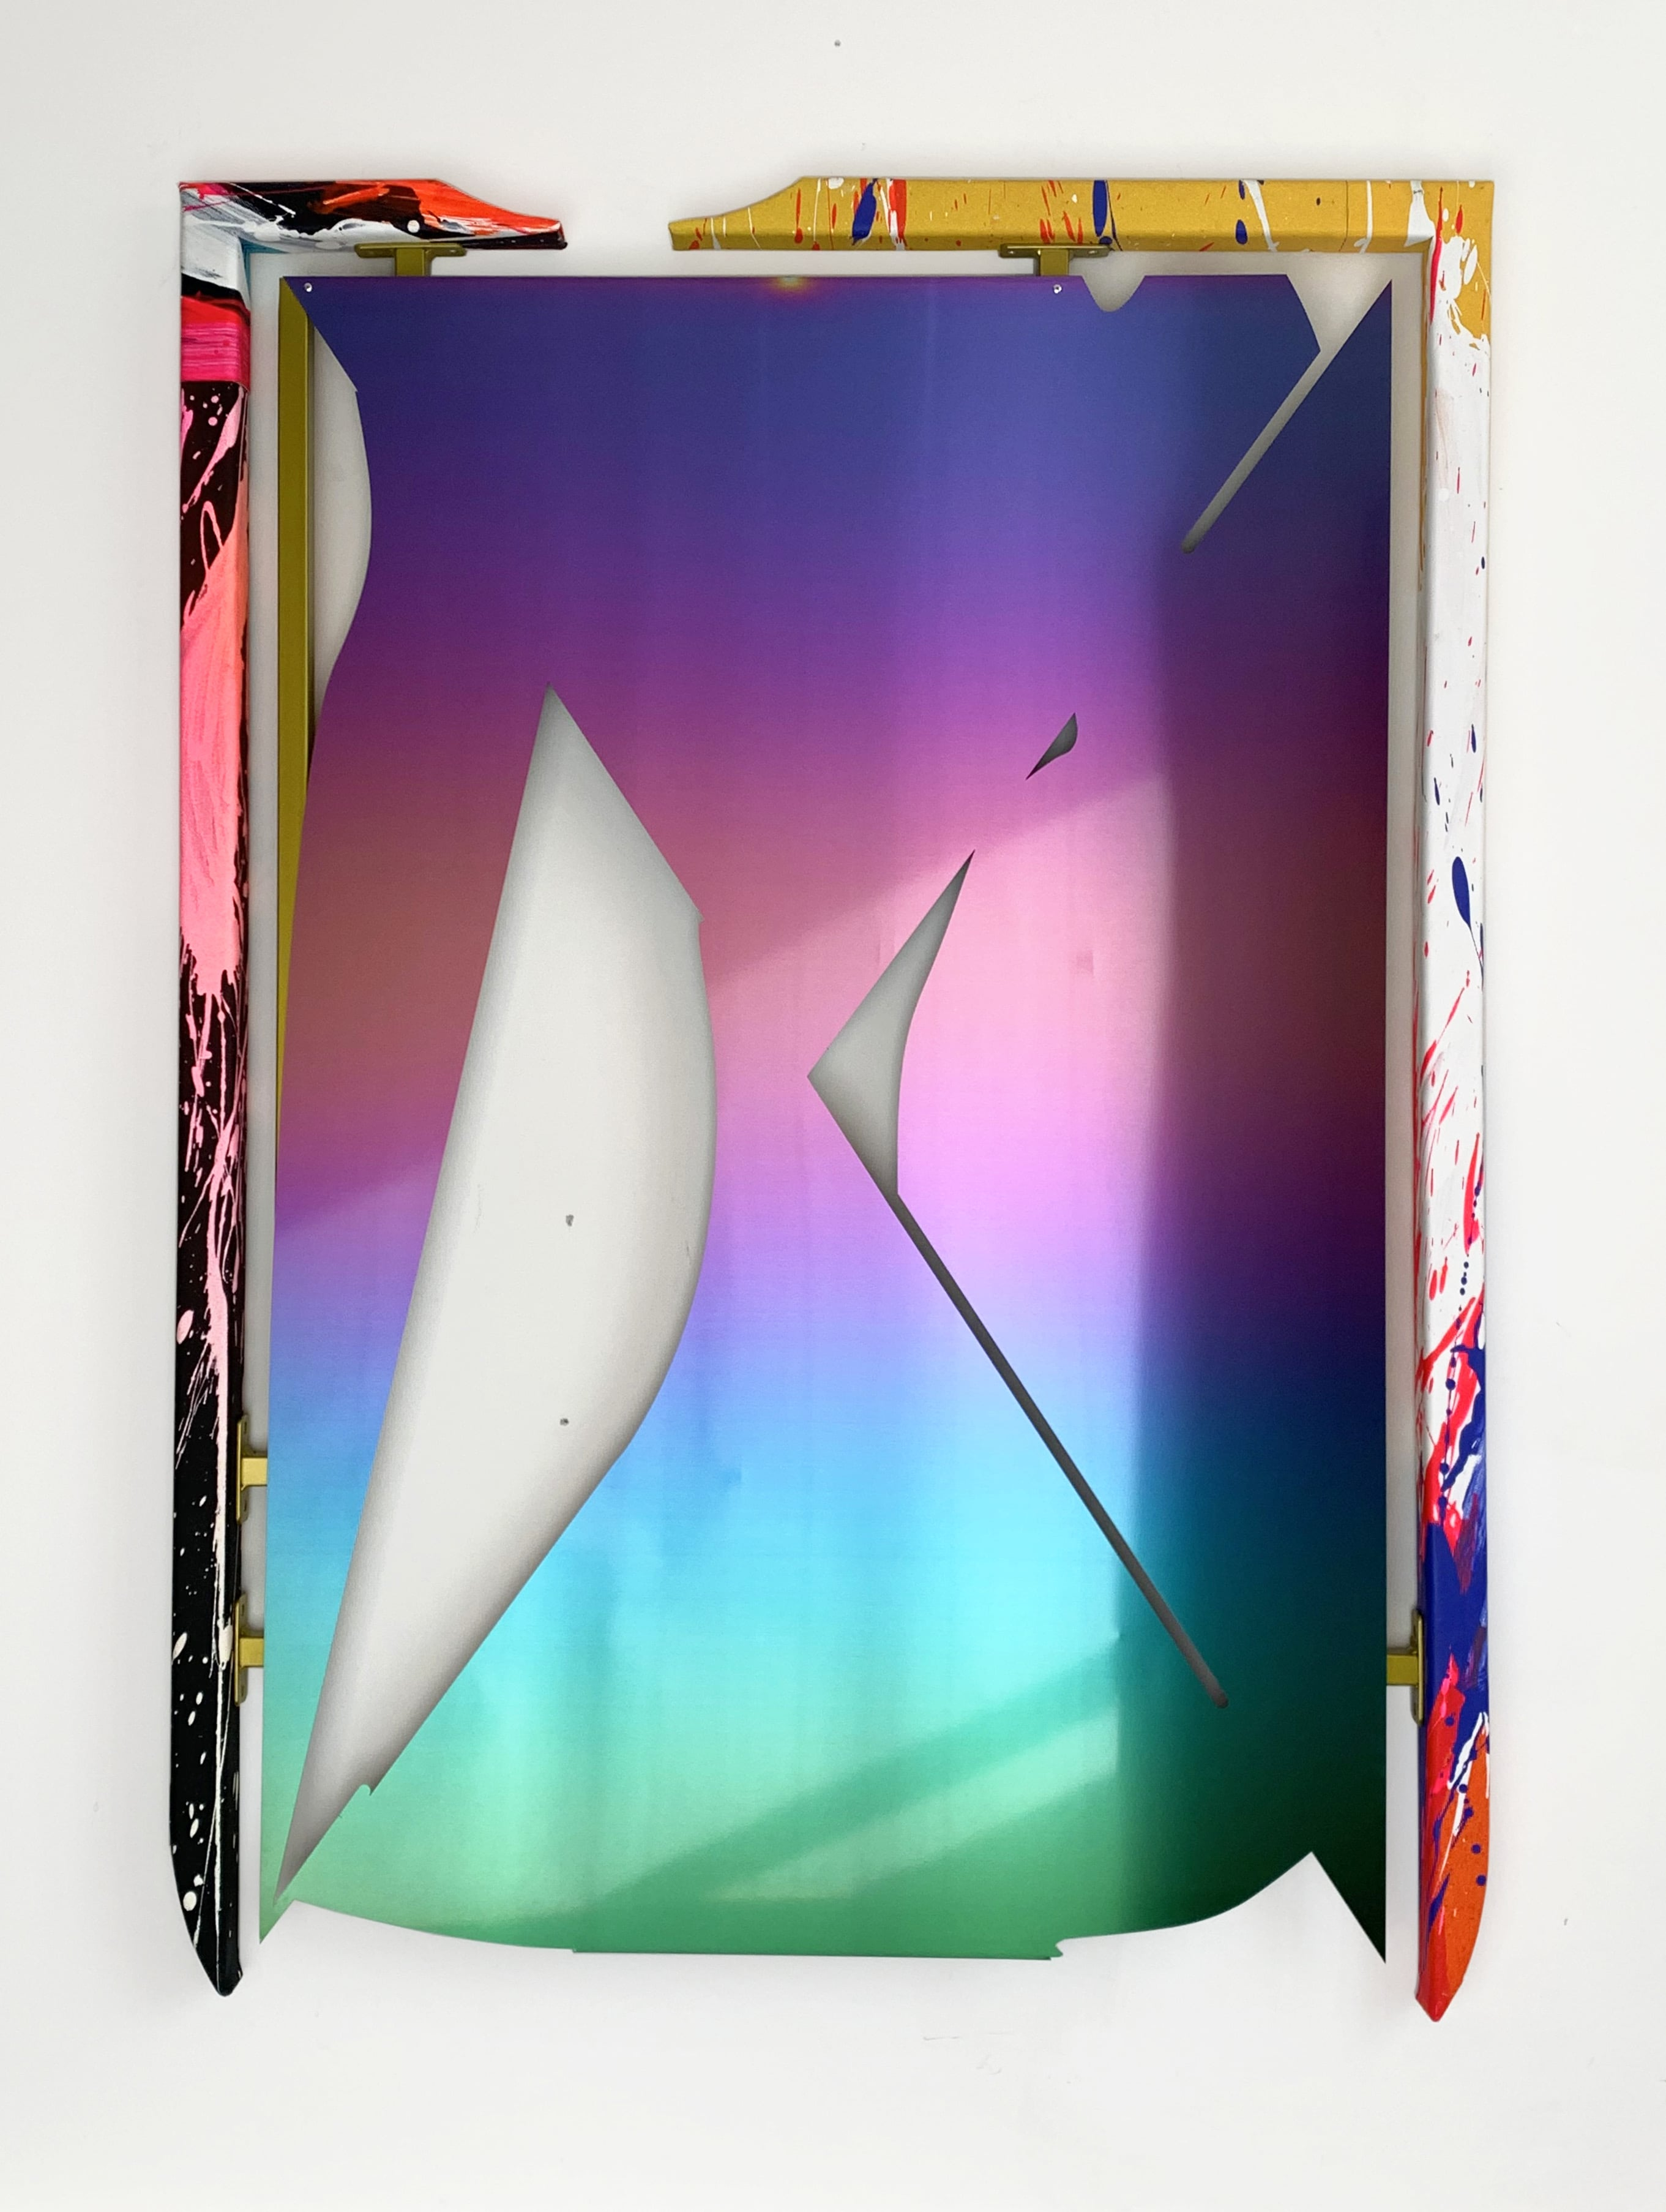 NemesM_The-Void-Paintings-04_2020_136x96cm_PVD-coated-stainless-steel-carpaint-steel-acrylic-canvas-wood-min